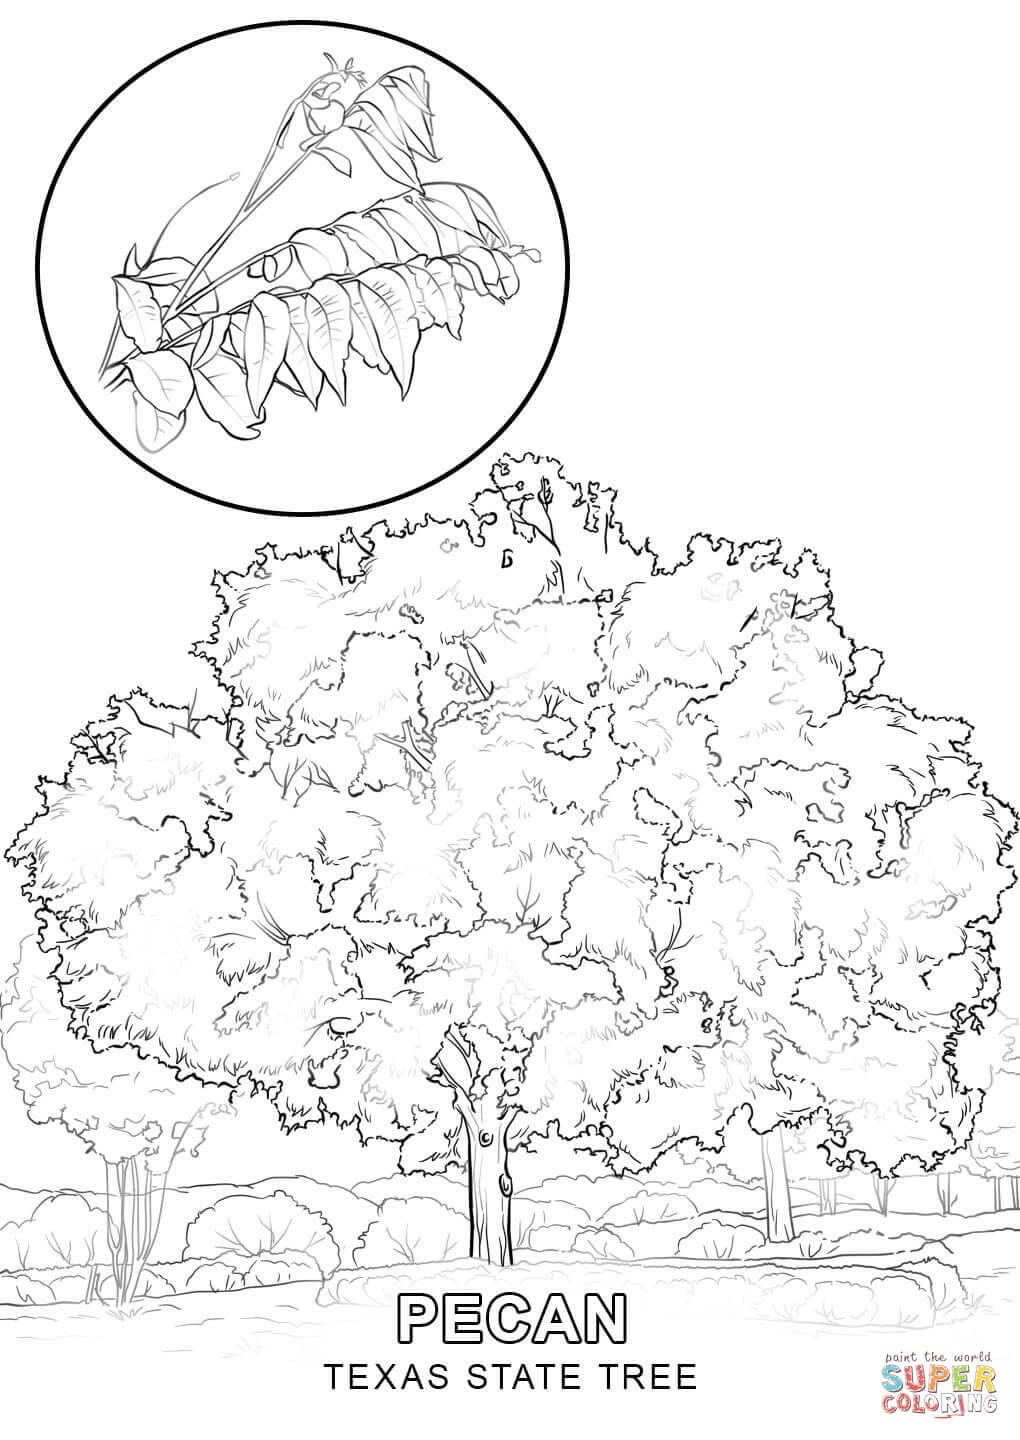 Texas State Tree Coloring Page